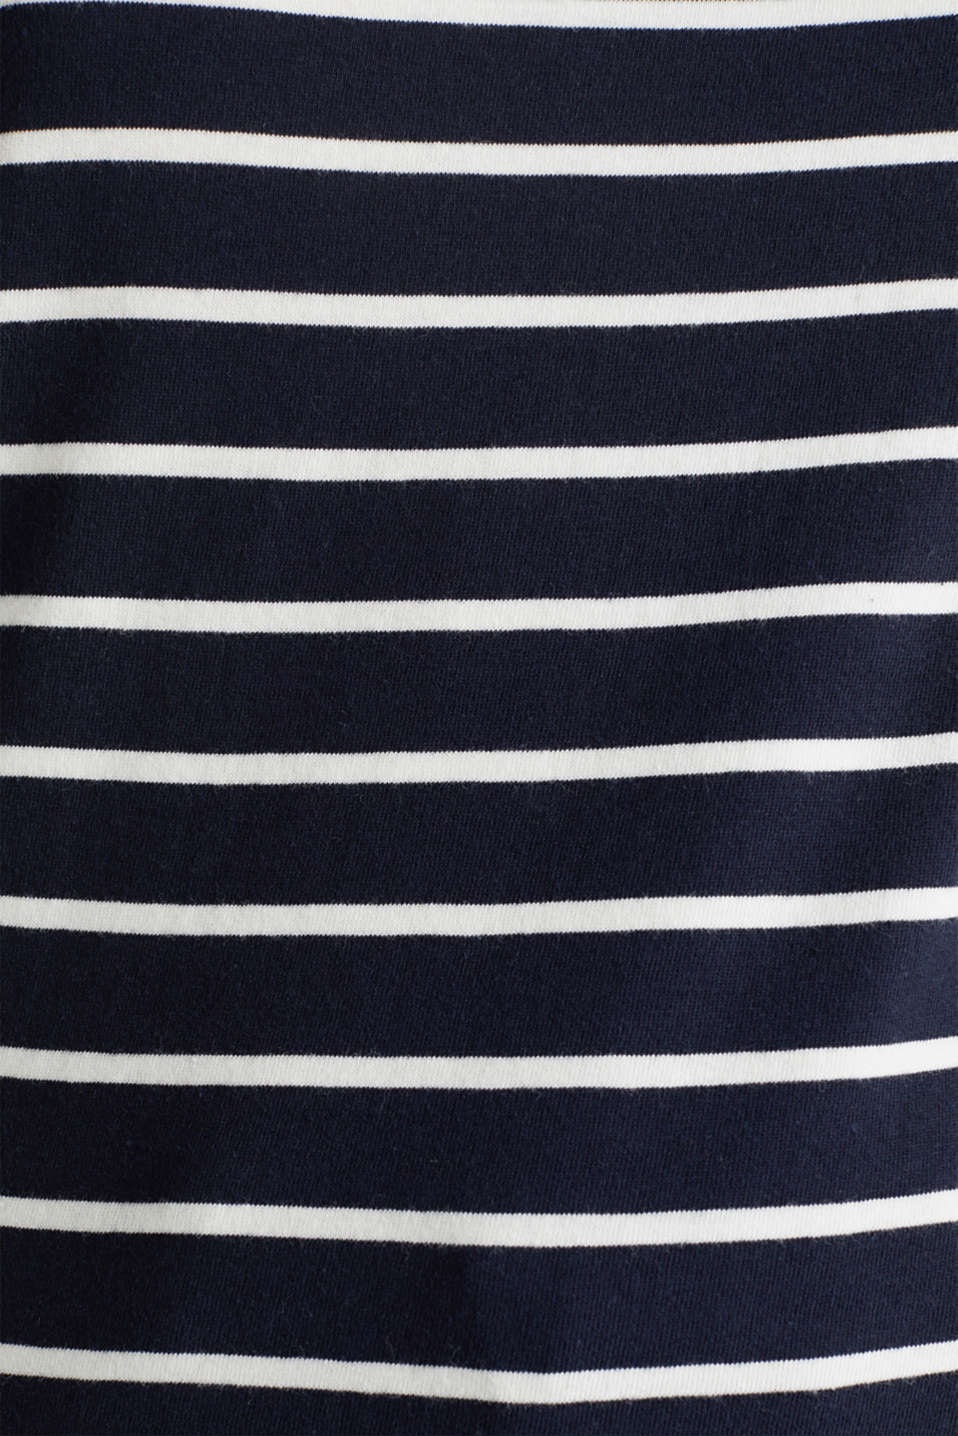 Striped top with embroidery, 100% cotton, NAVY, detail image number 4